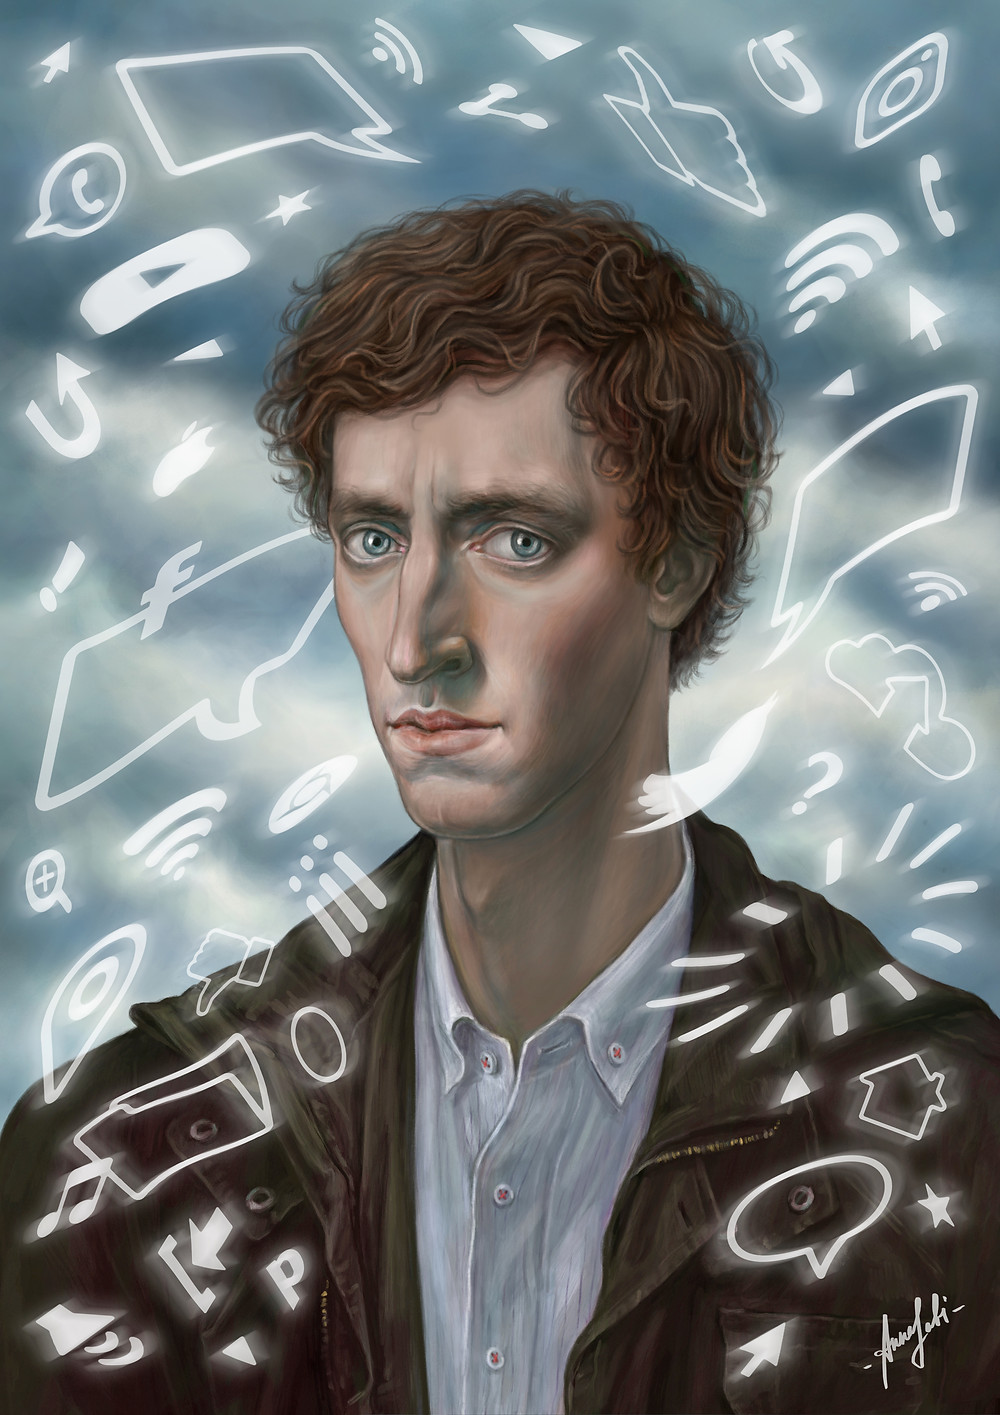 ' Richard ' Digital artwork of Richard Hendricks (Thomas Middleditch) from TV show: Silicon Valley.